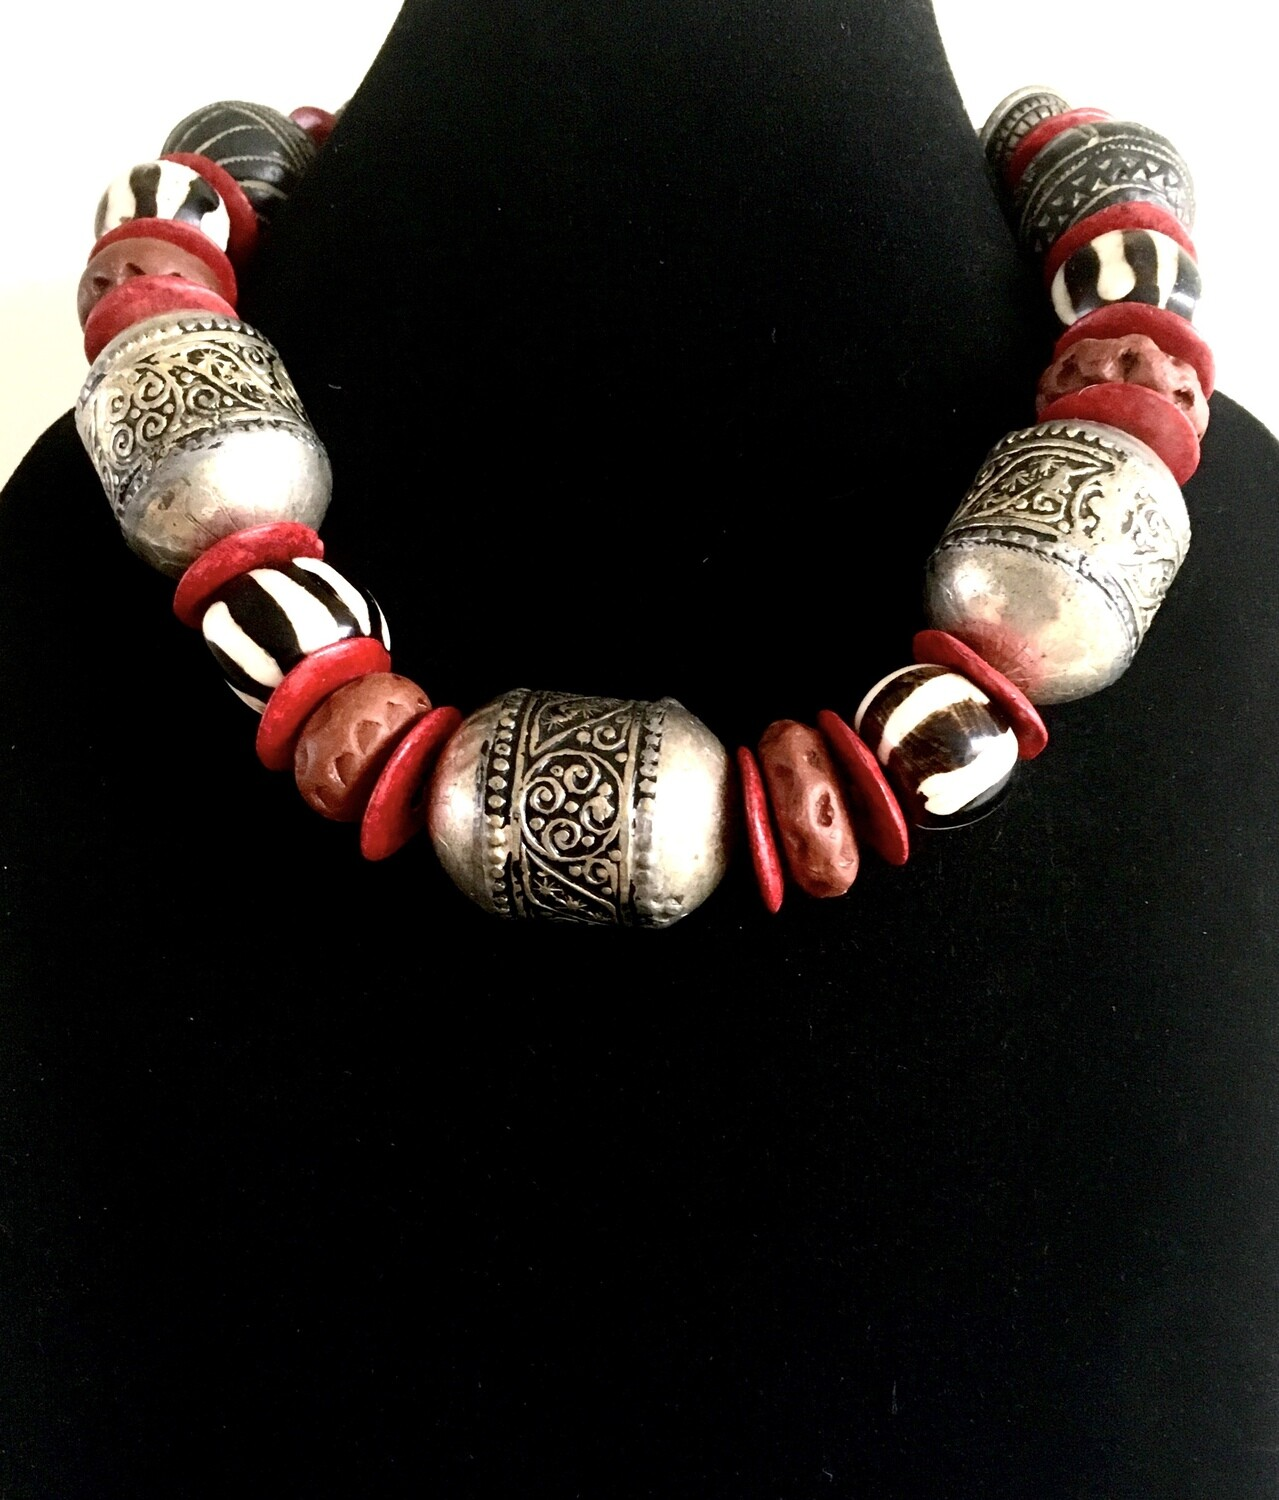 Berber styled necklace